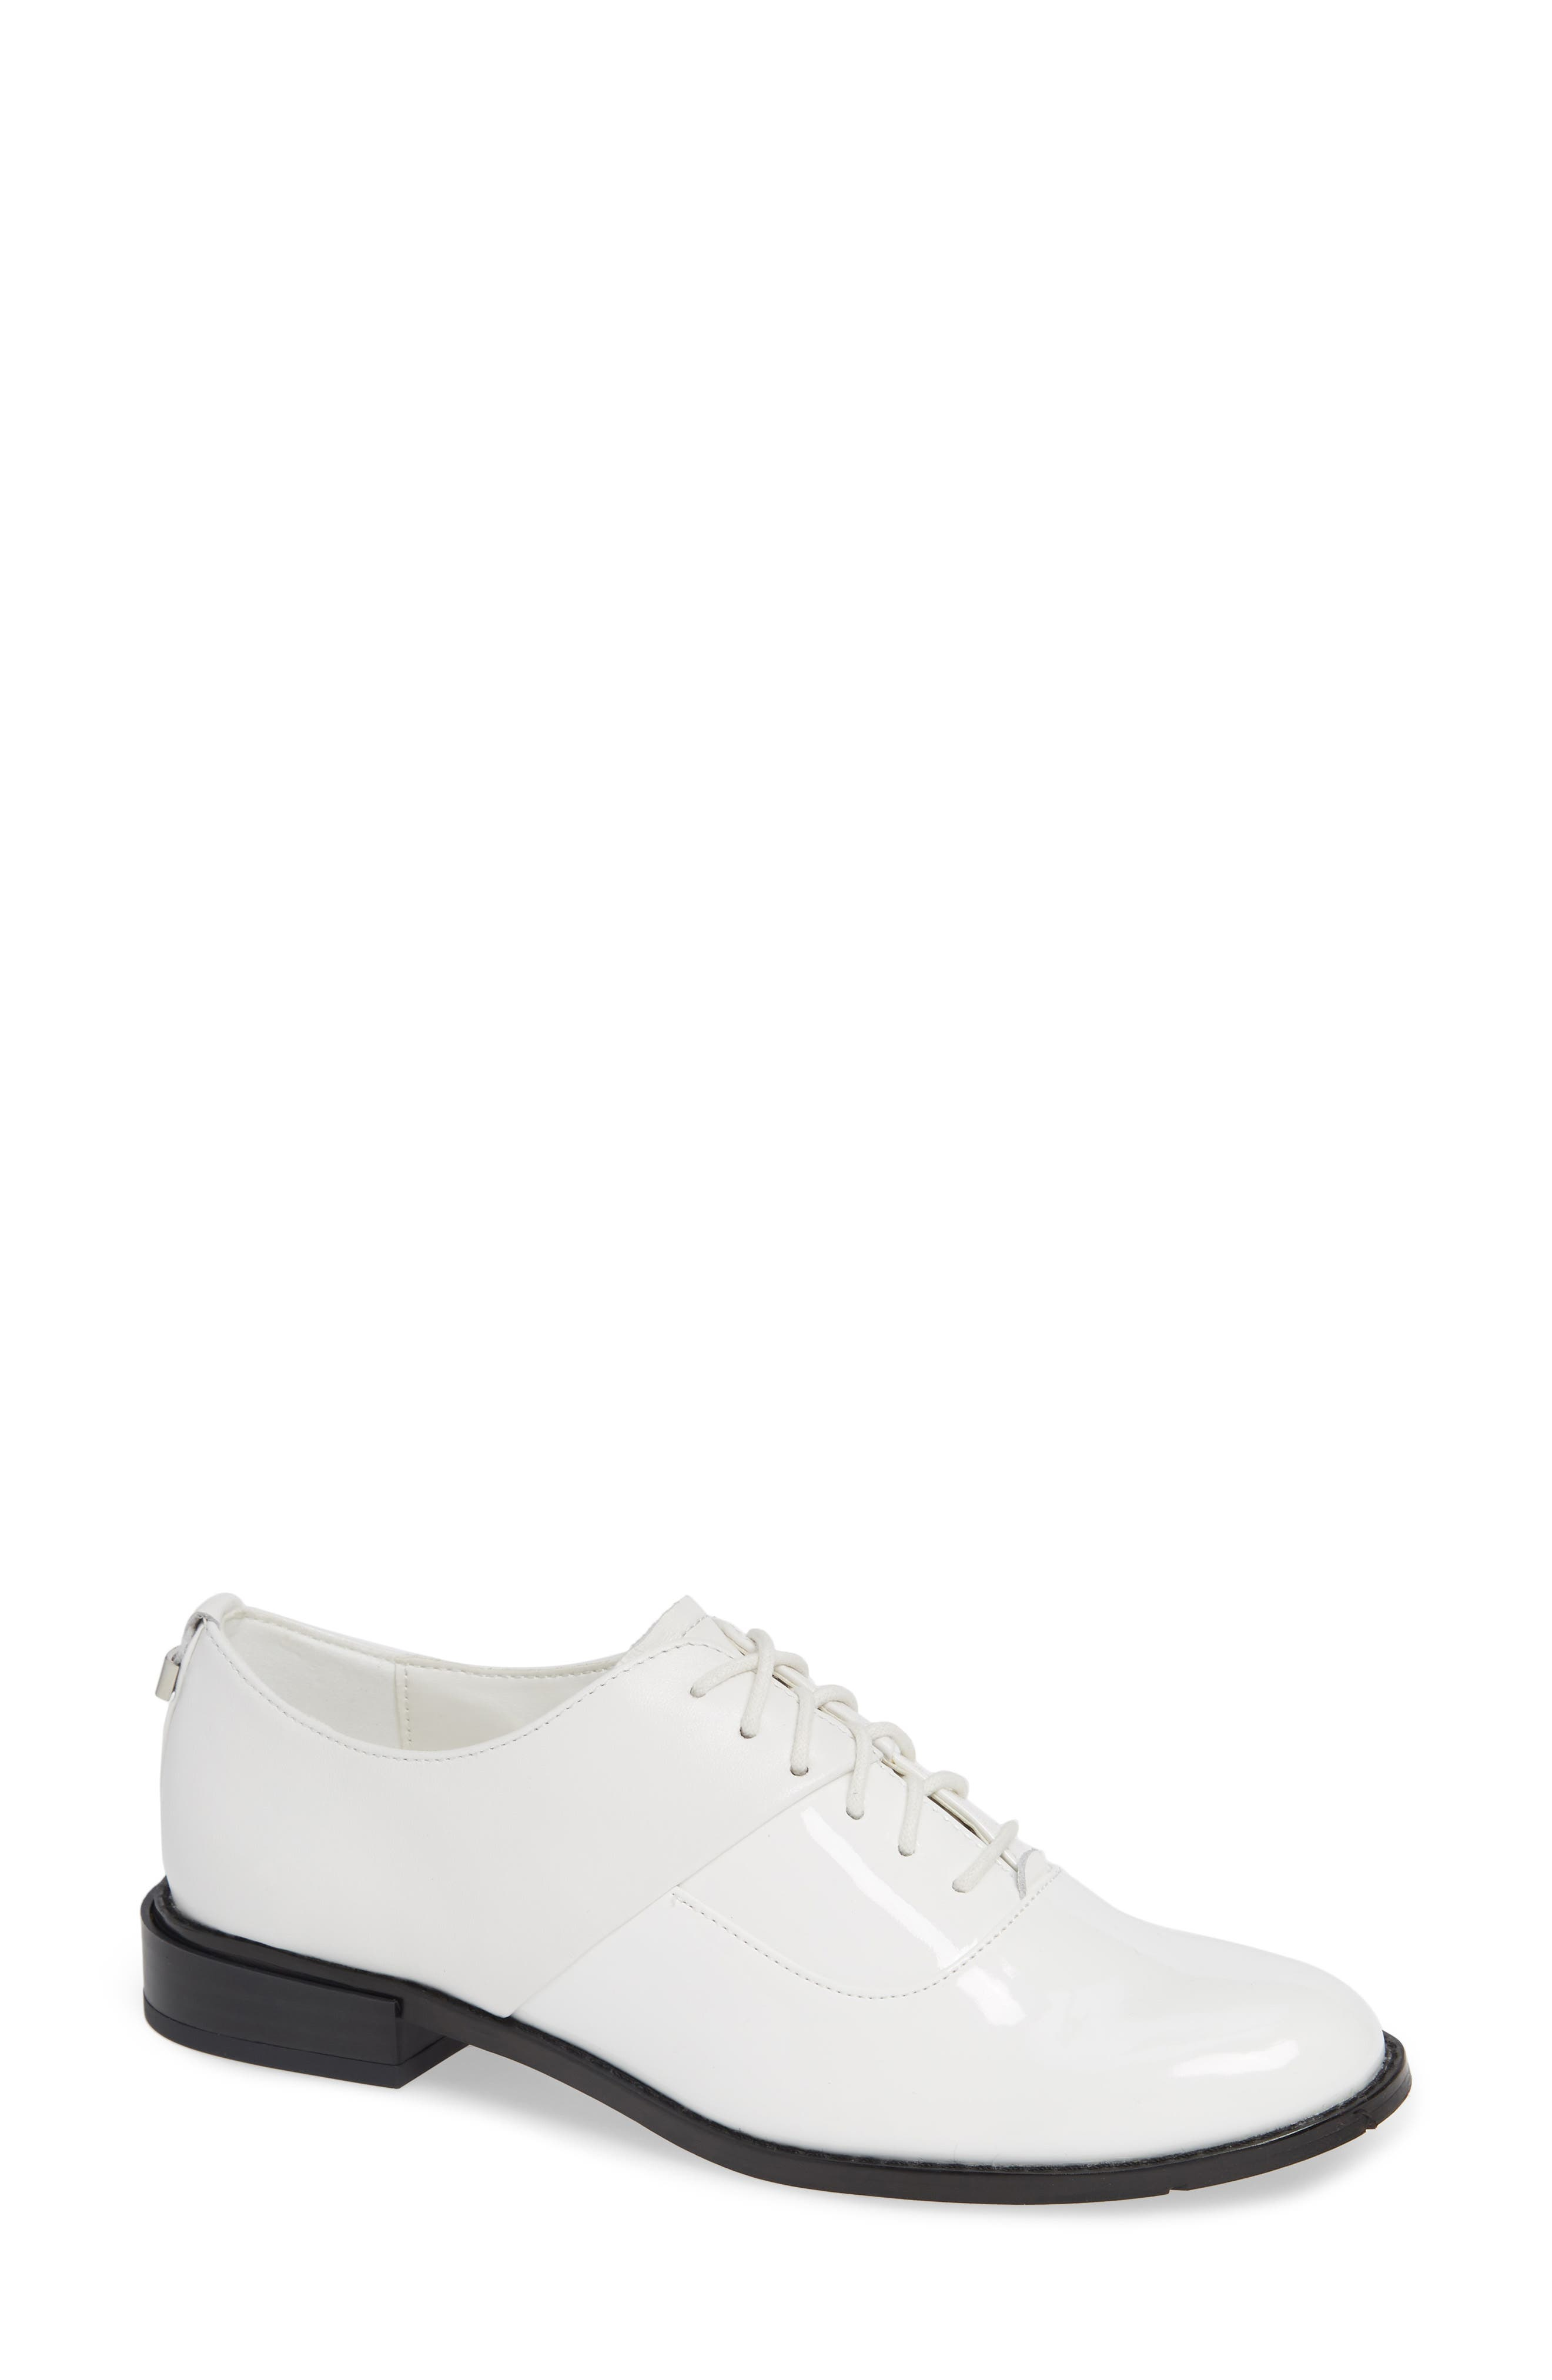 Calvin Klein Aracely Oxford, White